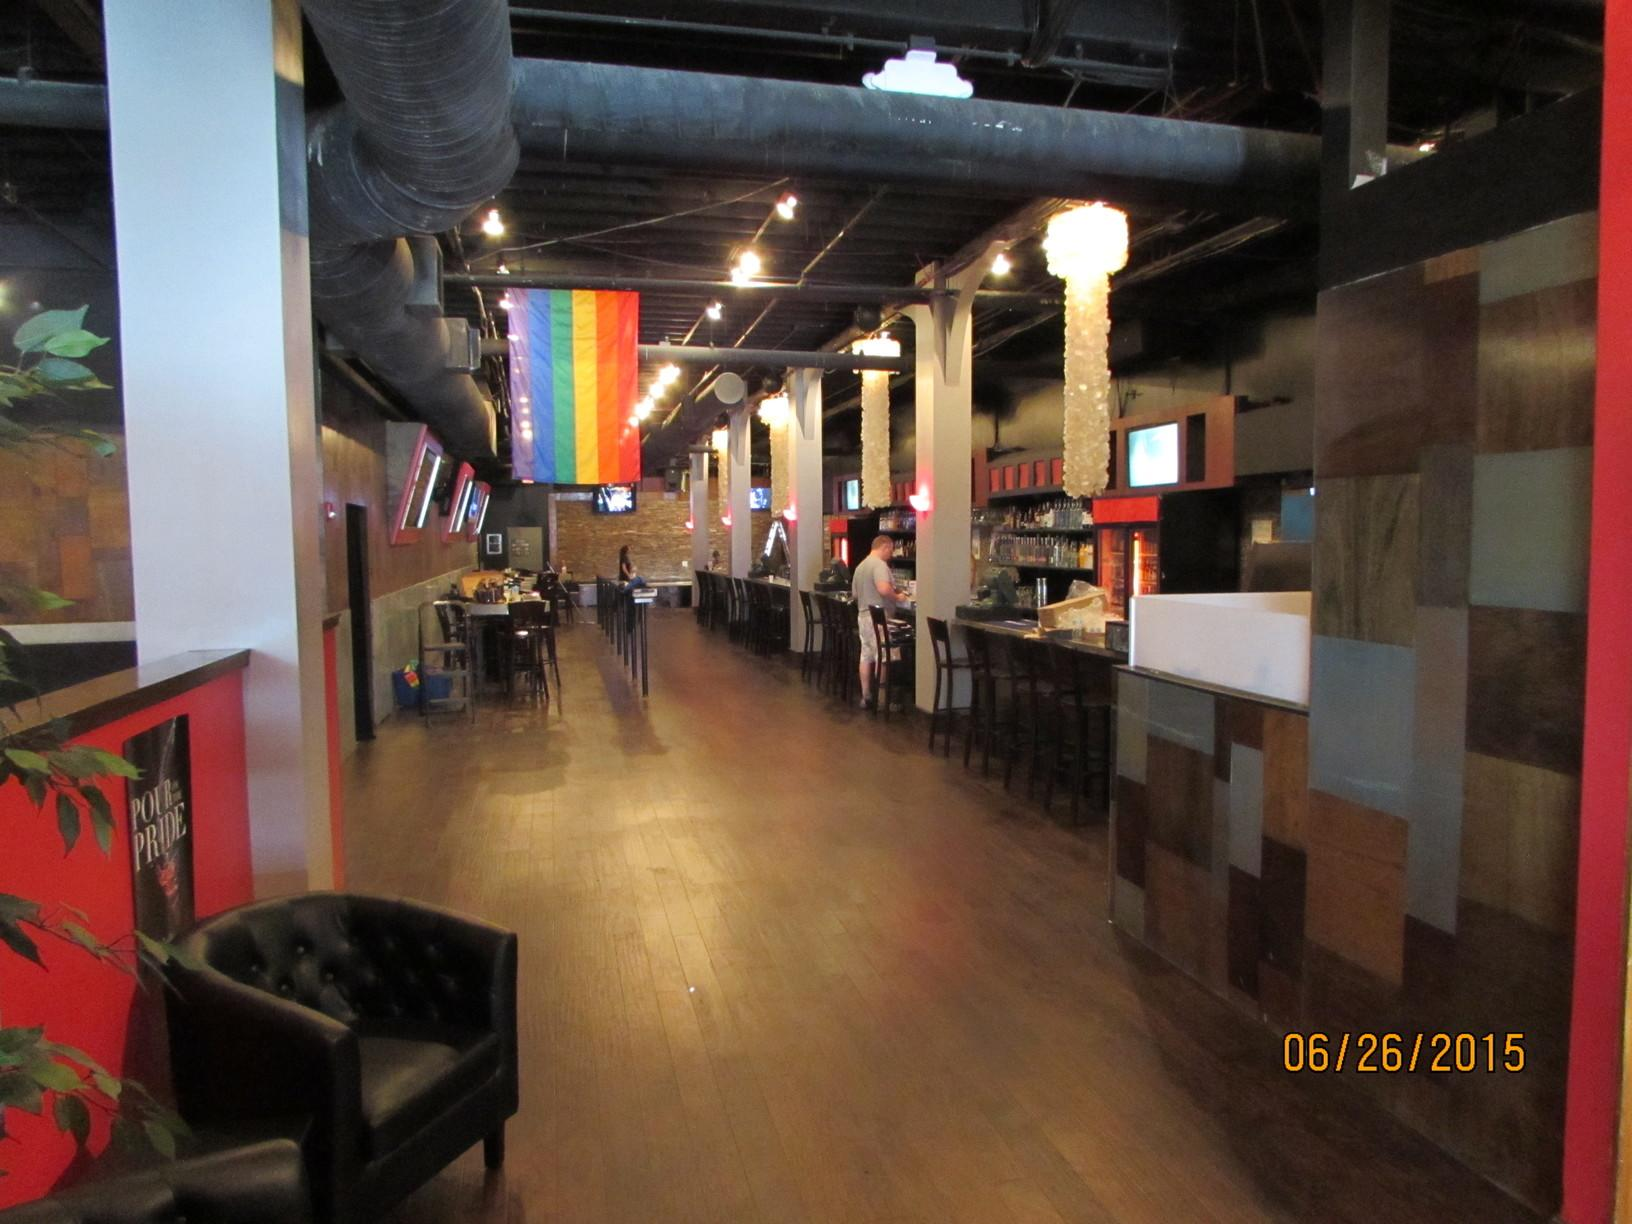 Disaster Restoration in Cleveland, OH bar - After Photo